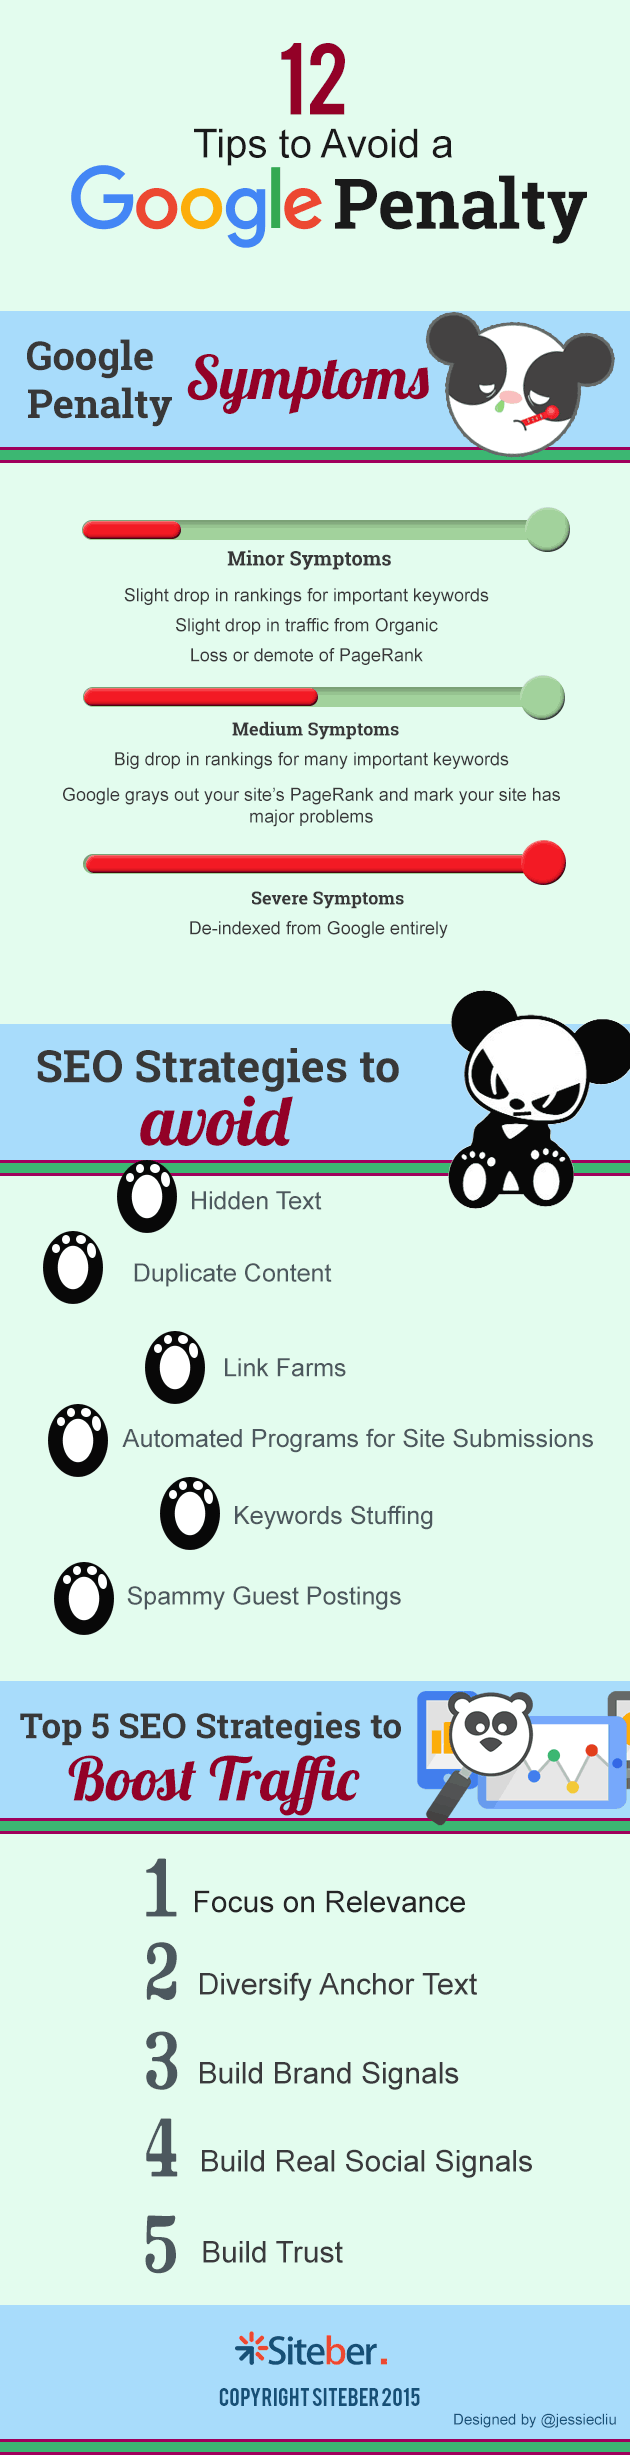 how-to-avoid-a-google-penalty-infographic